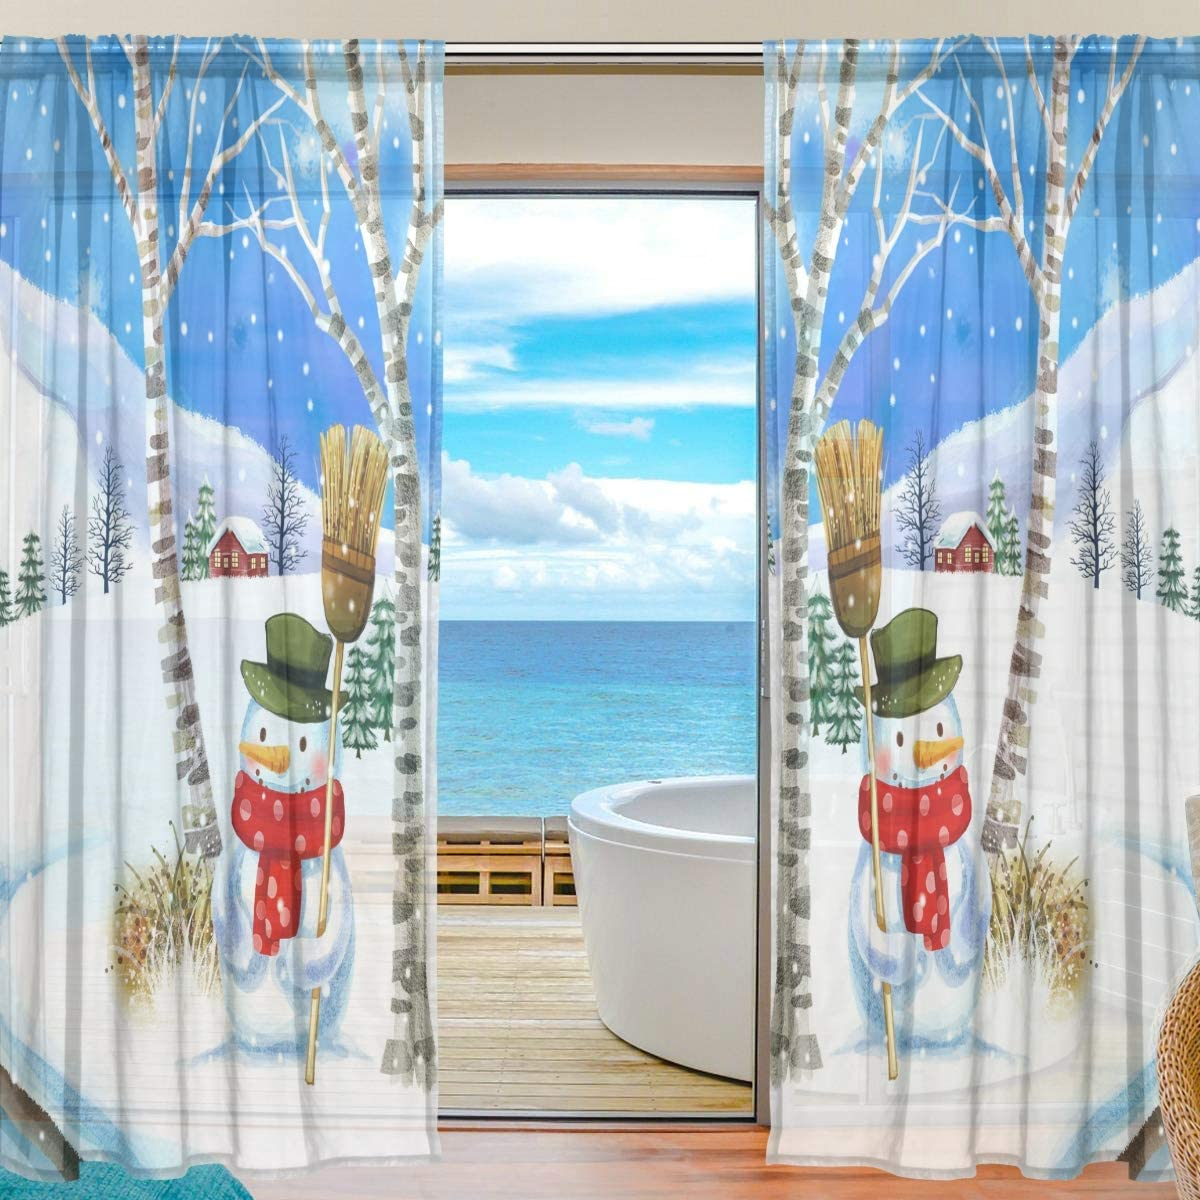 Amazon Com Welllee Winter Holiday Christmas Scene Voile Sheer Window Curtain Door Way Tulle Curtain Drapes Panels For Living Room Bedroom Kitchen 55x78 Inch 2 Pcs Home Kitchen